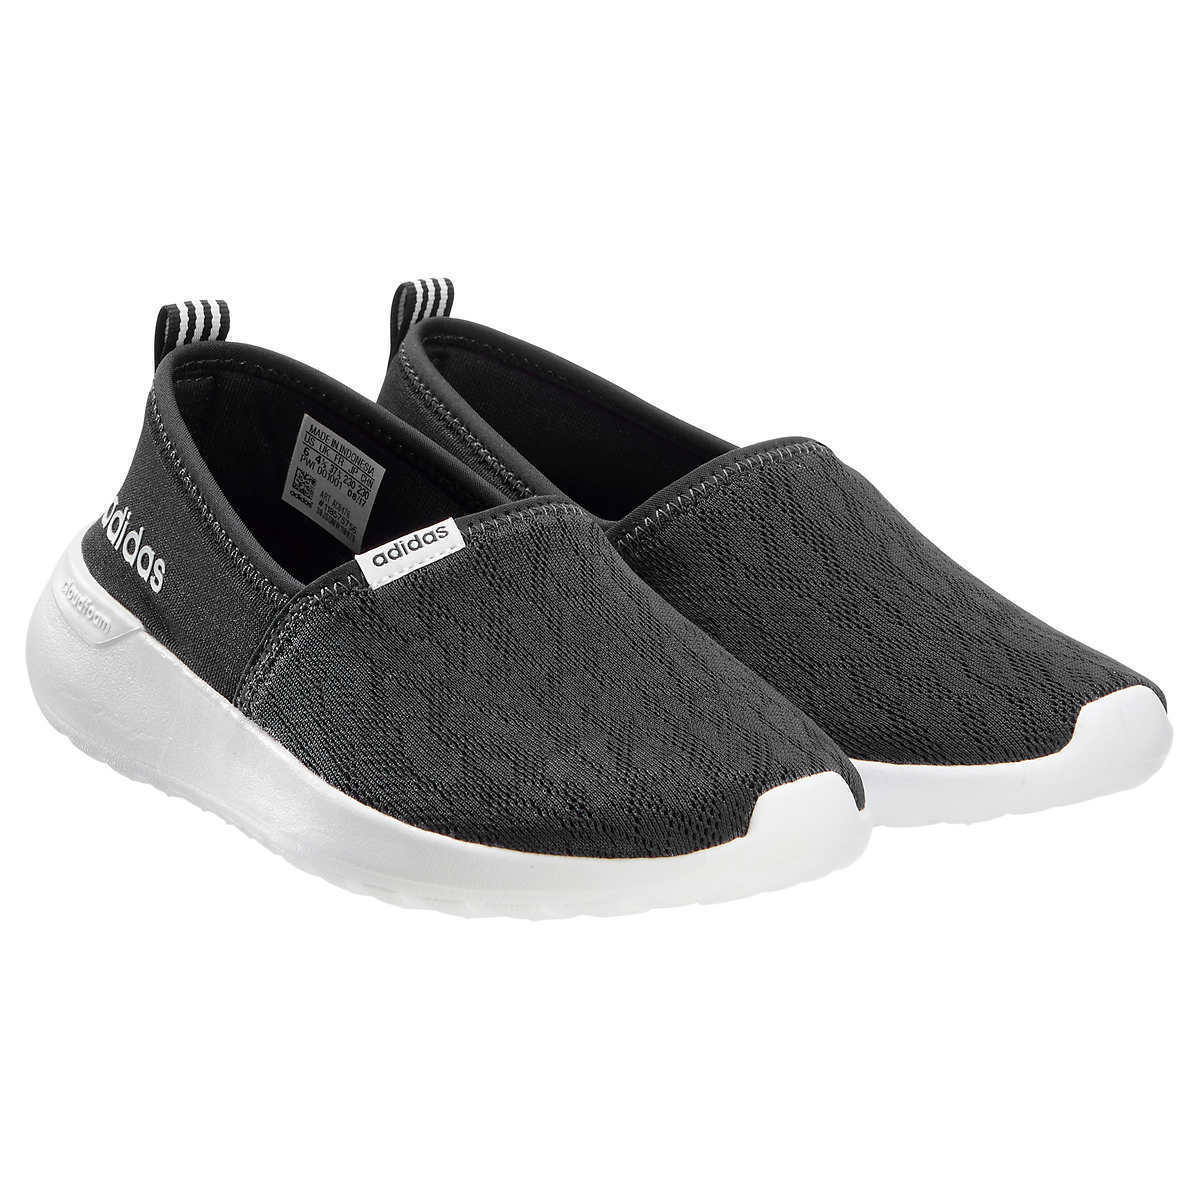 NEW Womens Black ADIDAS Slip On CloudFoam Neo Size Lite Racer Shoes Sneakers Size Neo 8.5 dbb256